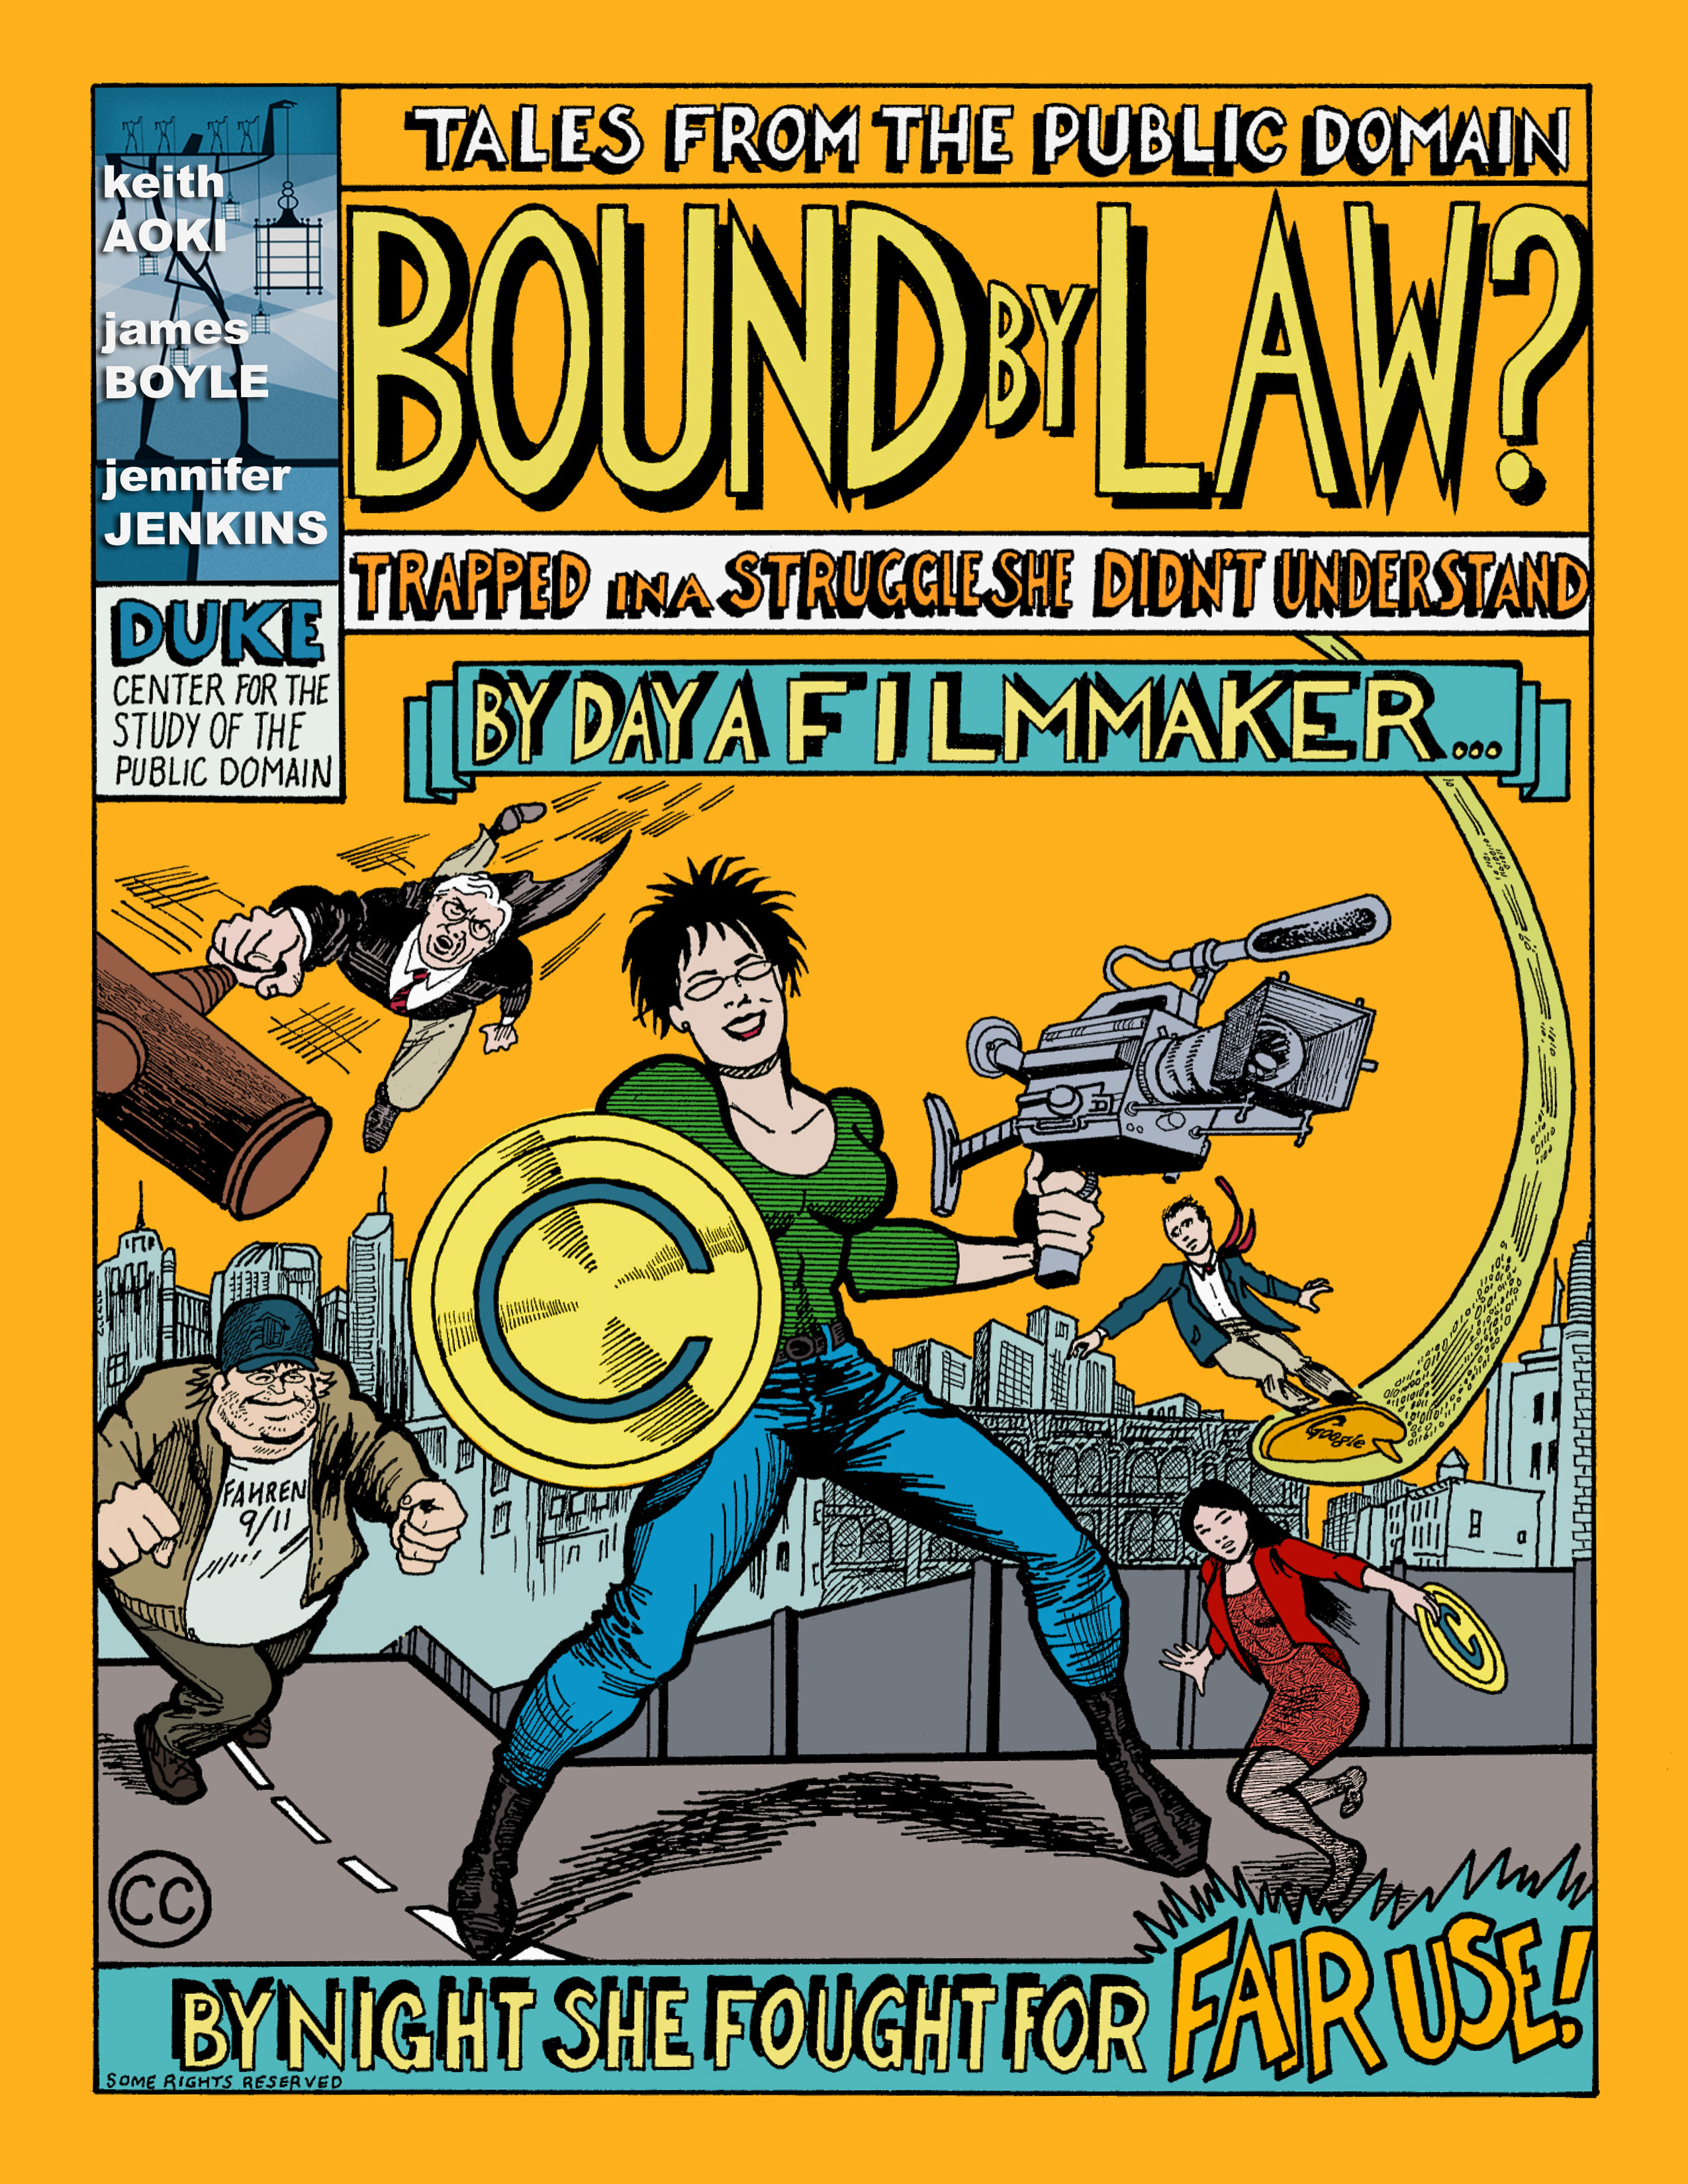 cover of comic book on public domain issues from Duke University